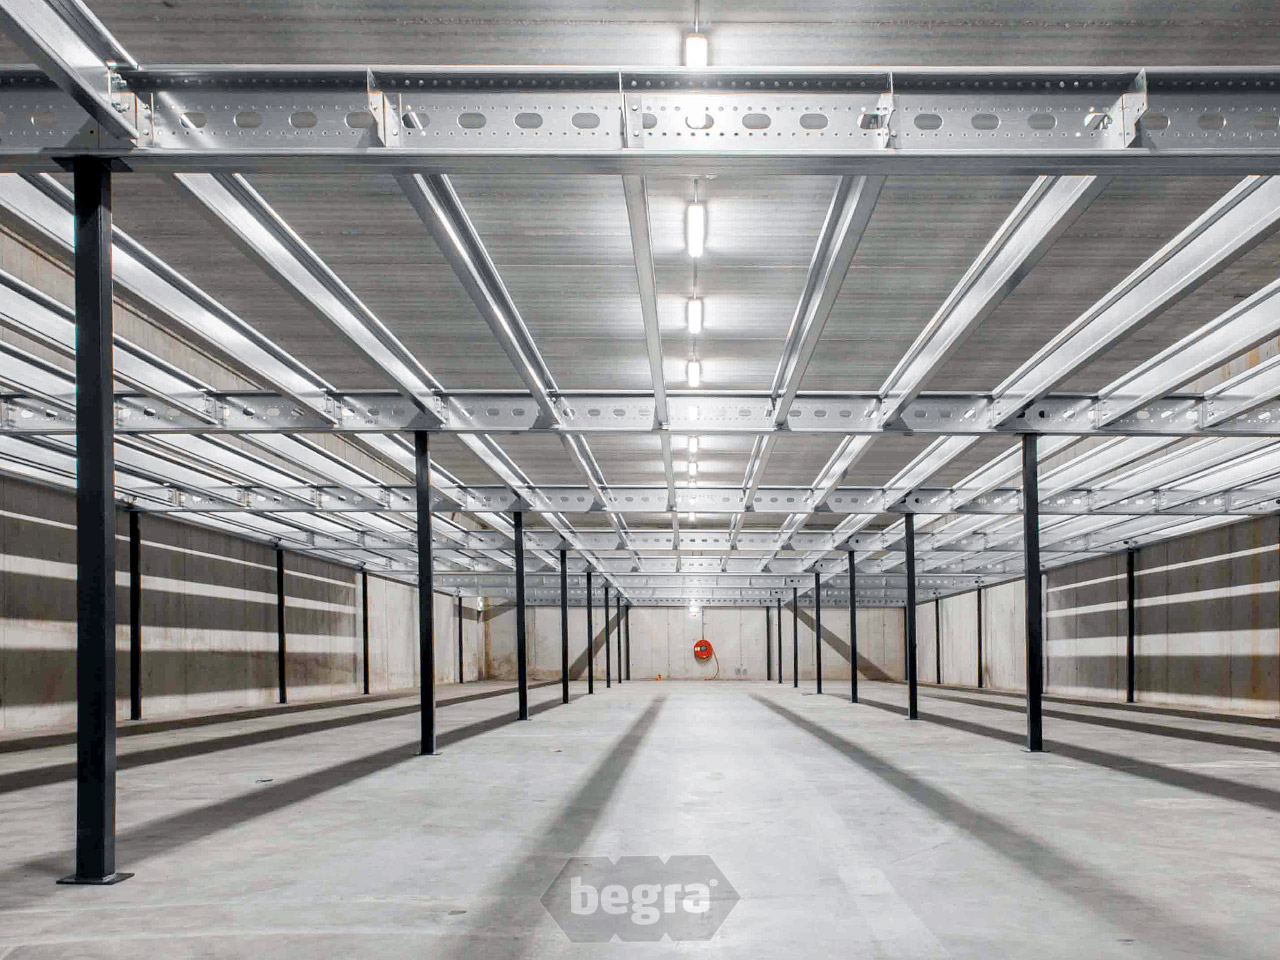 Mezzanine floors begra storage solutions - Mezzanine verlichting ...